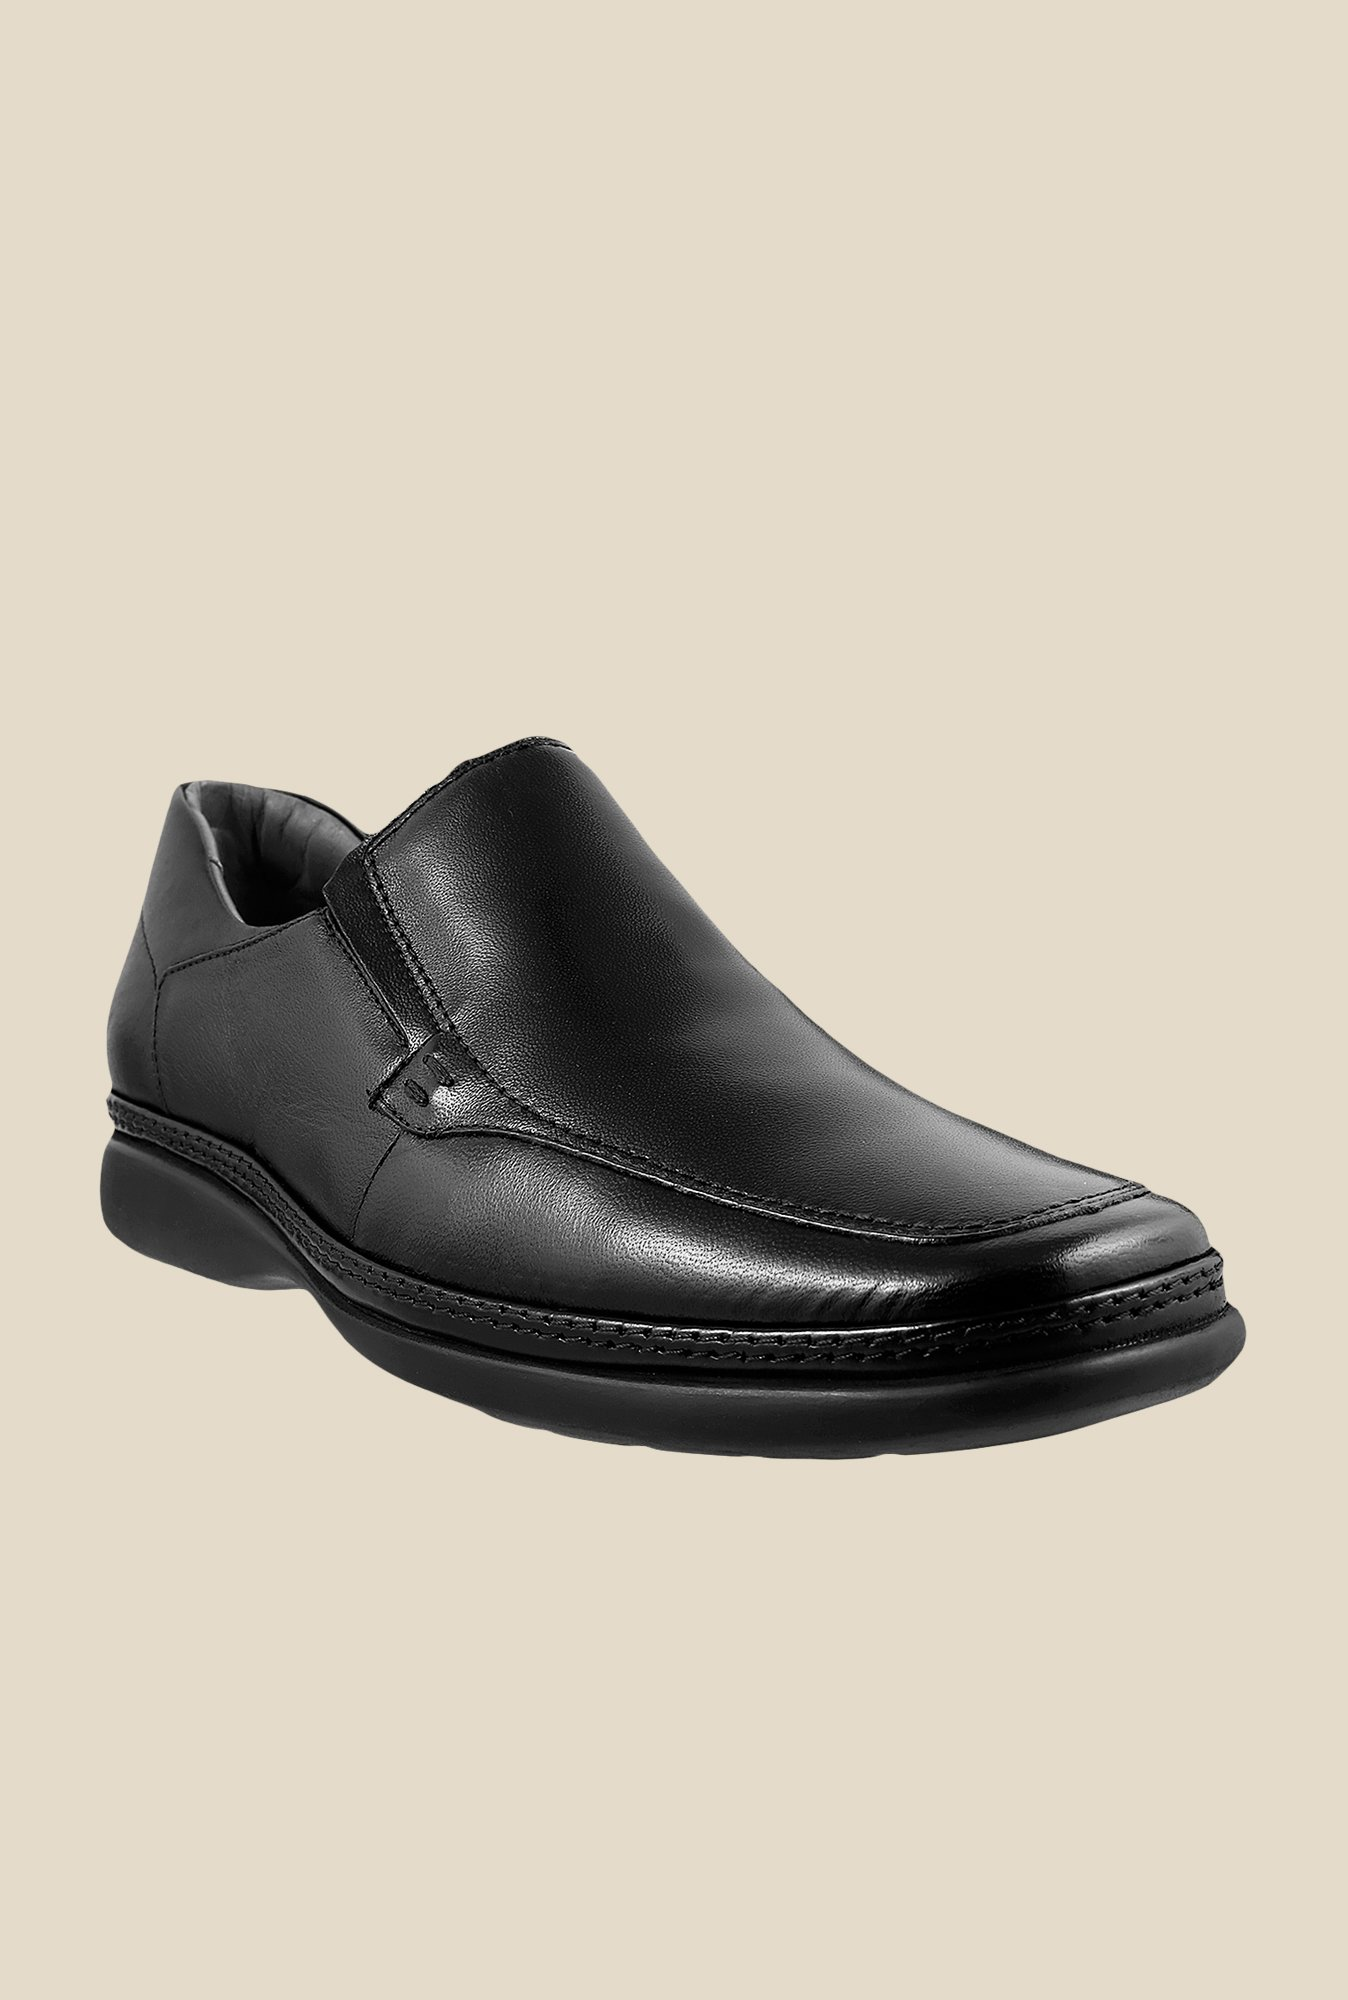 Da Vinchi by Metro Black Formal Slip-Ons